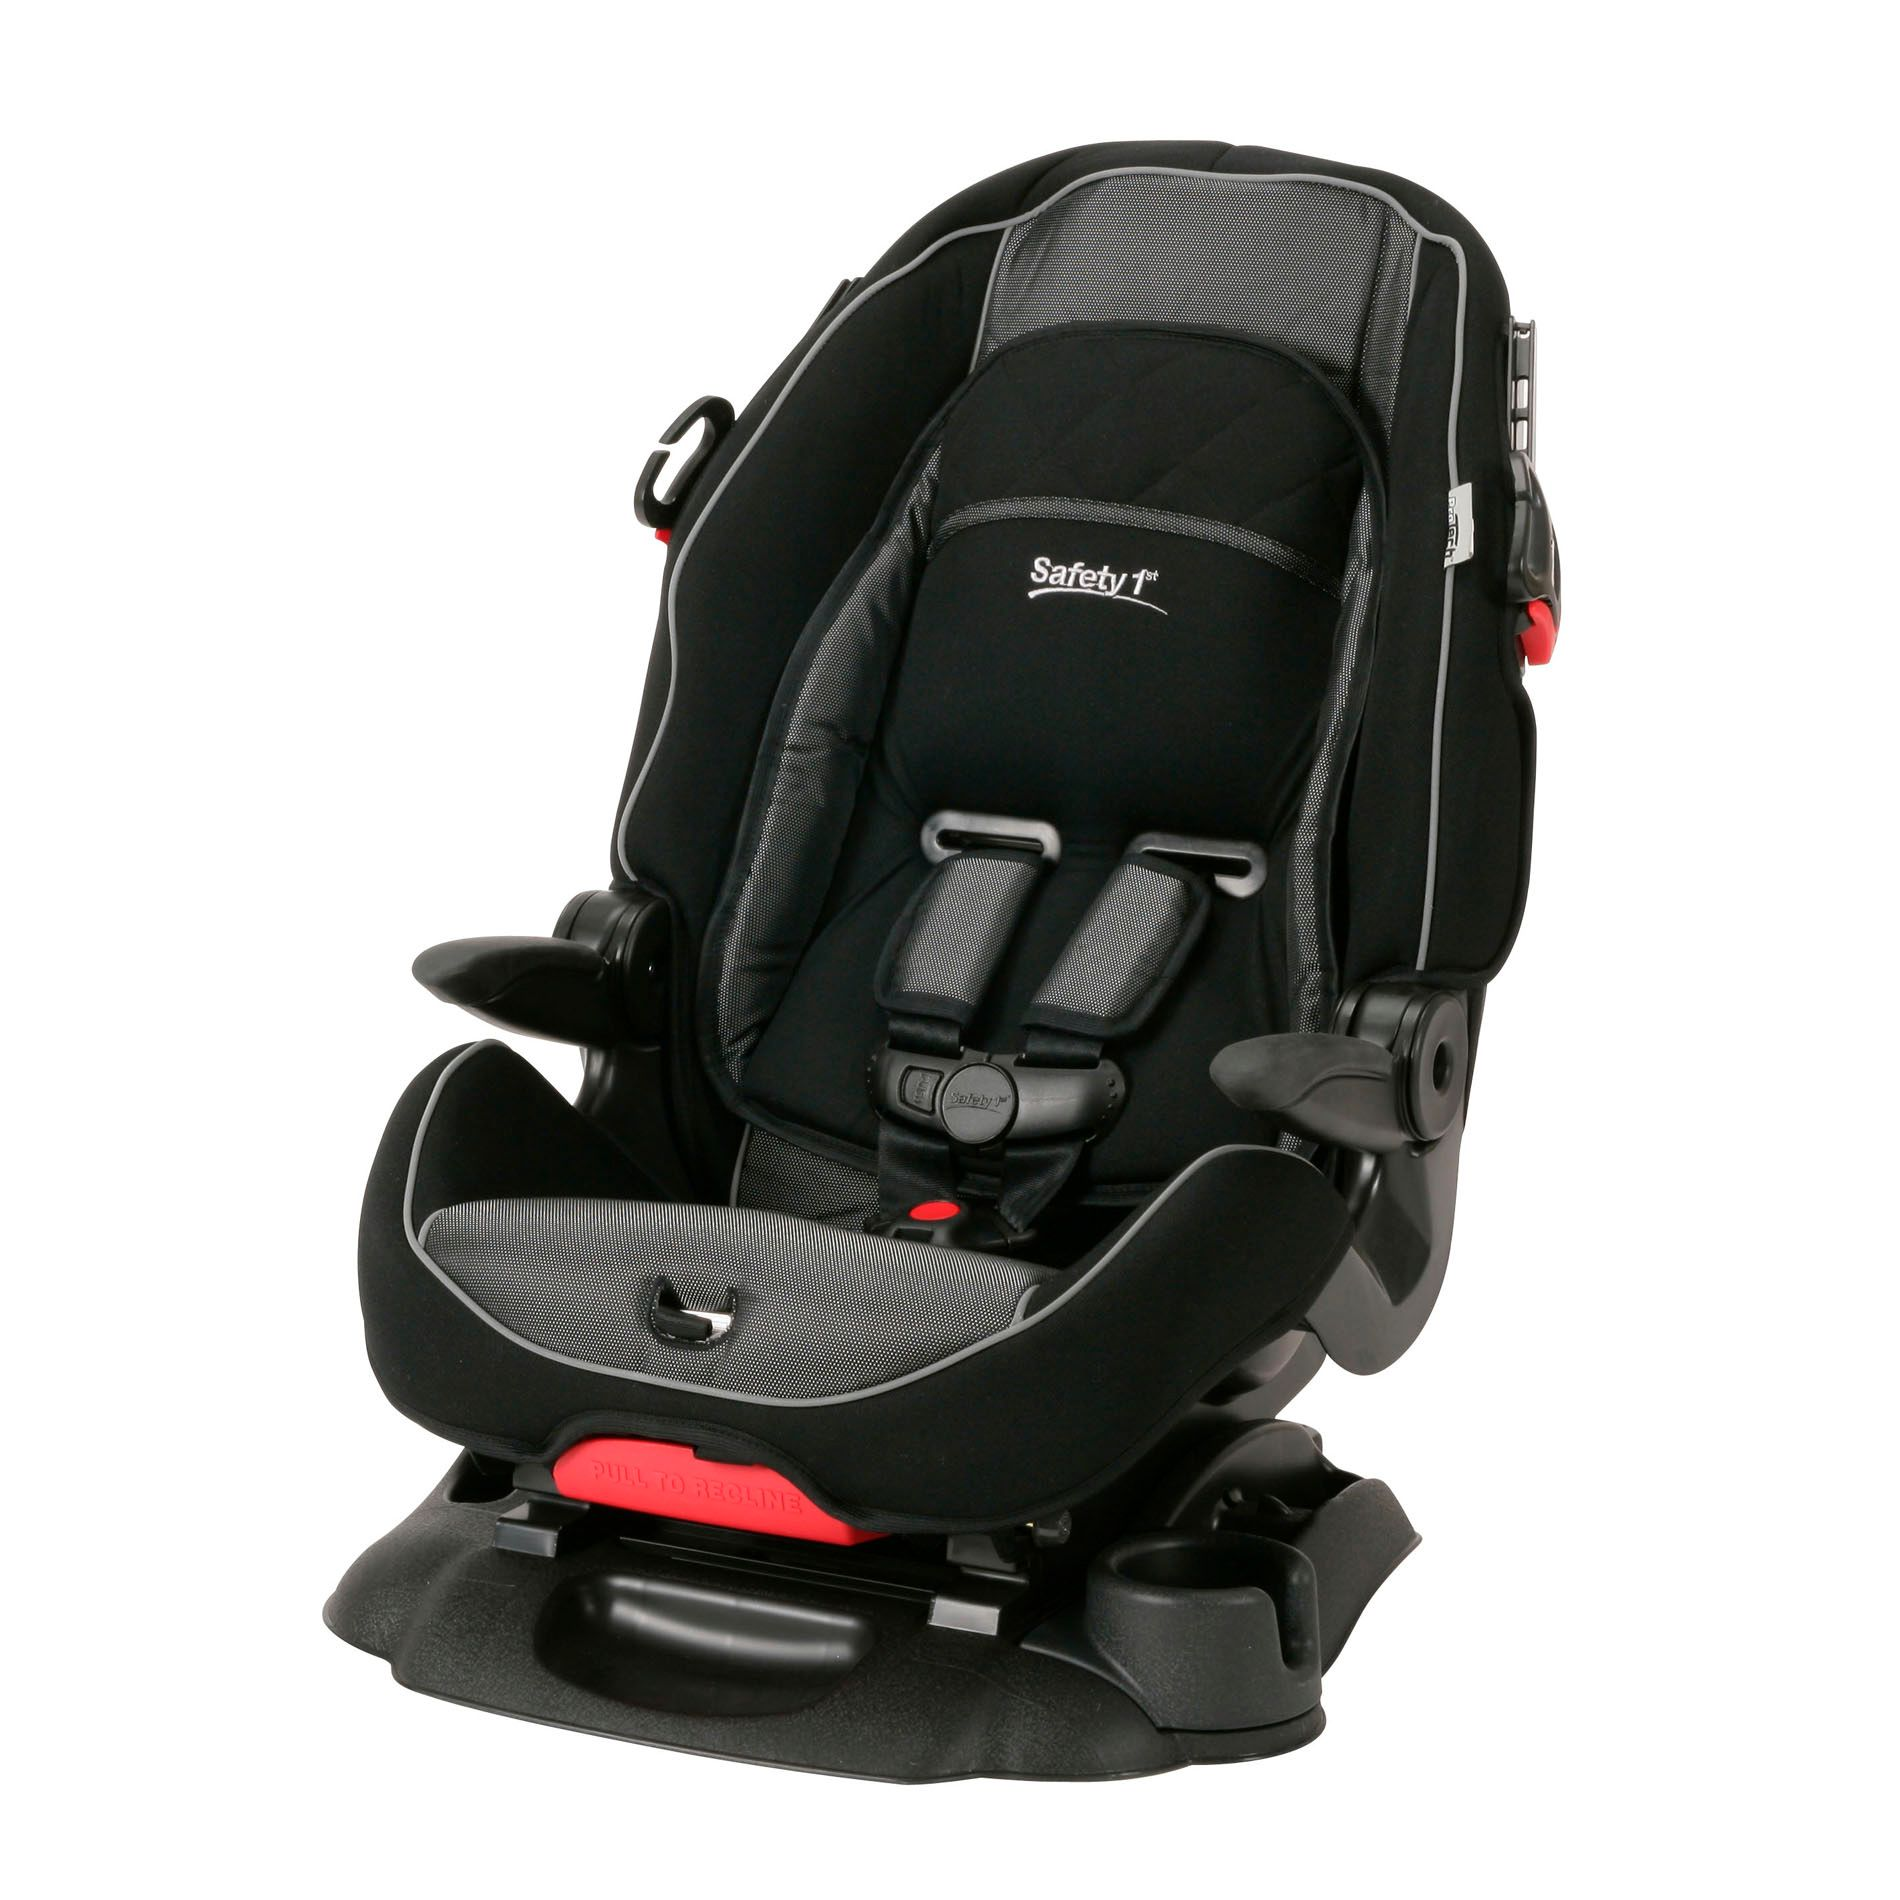 Safety 1st High Booster Car Seat